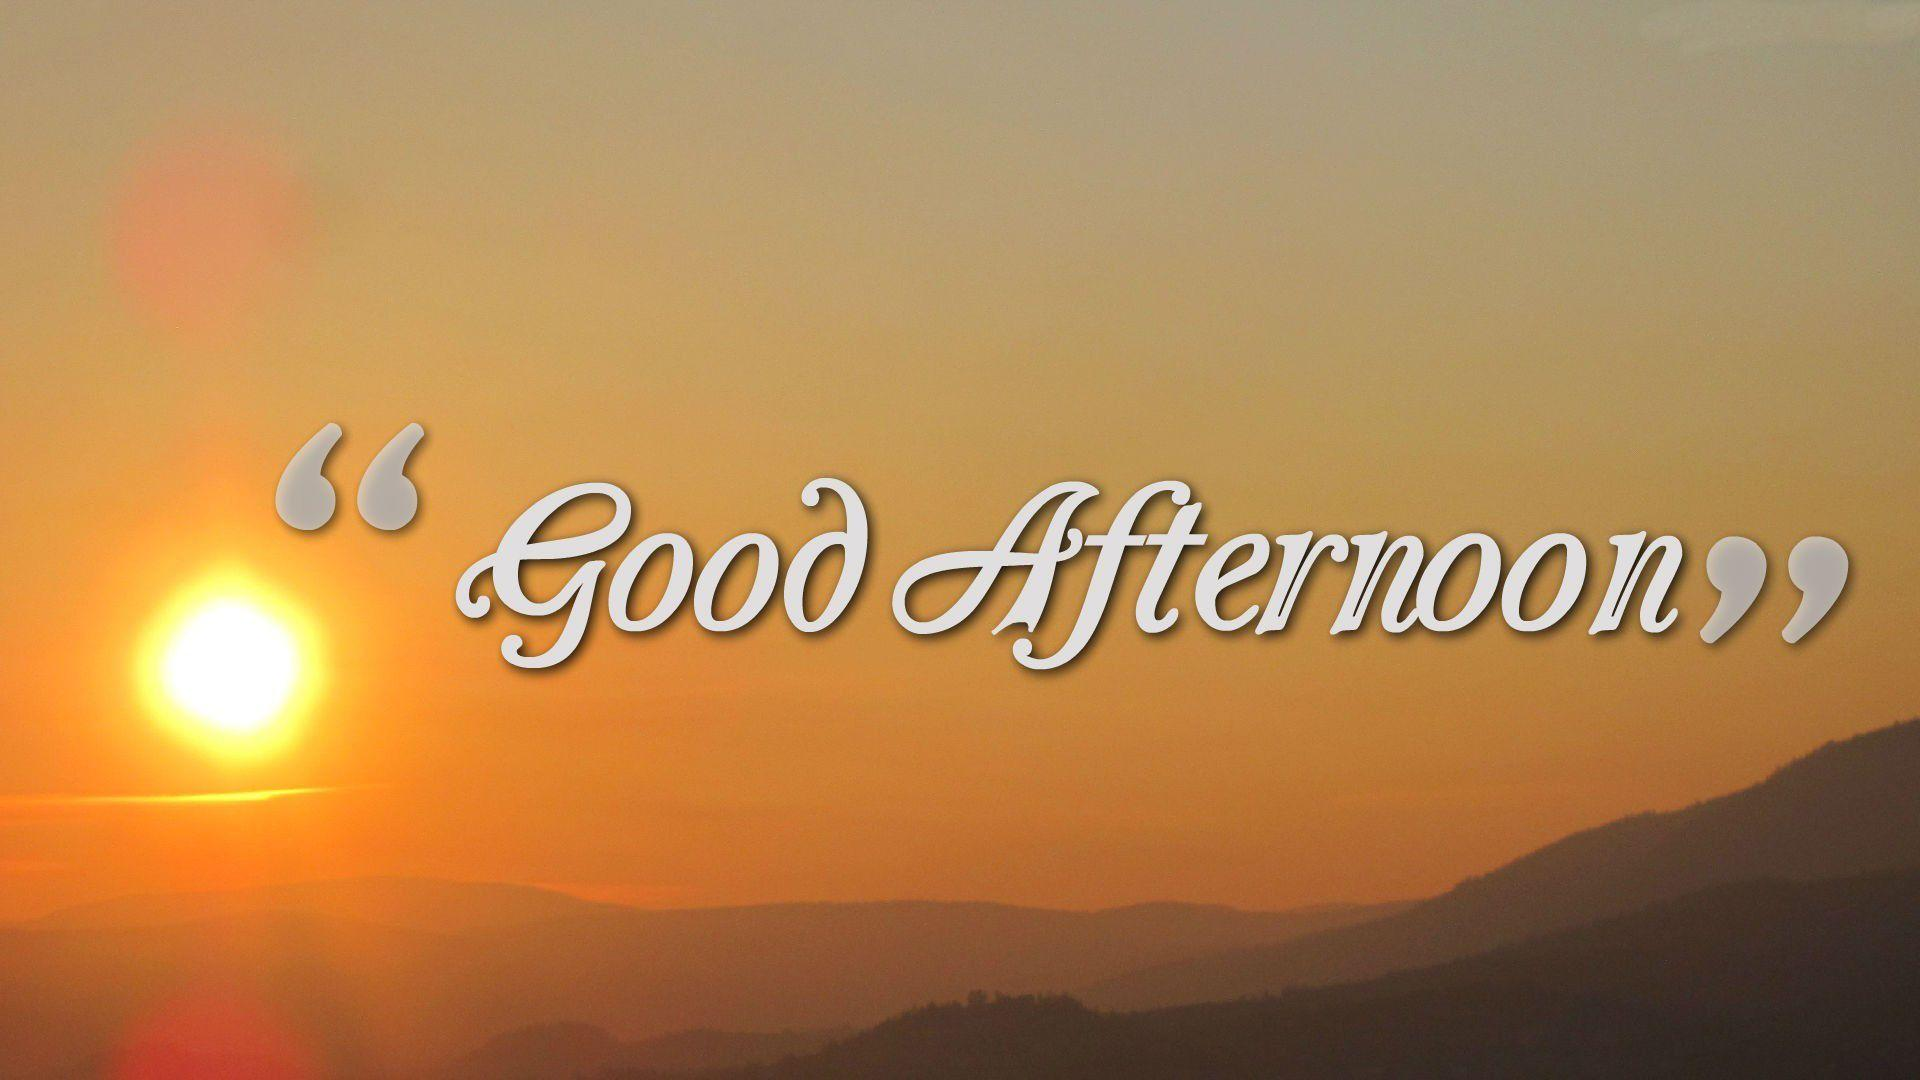 Best Good Afternoon Wallpapers Free Download Images